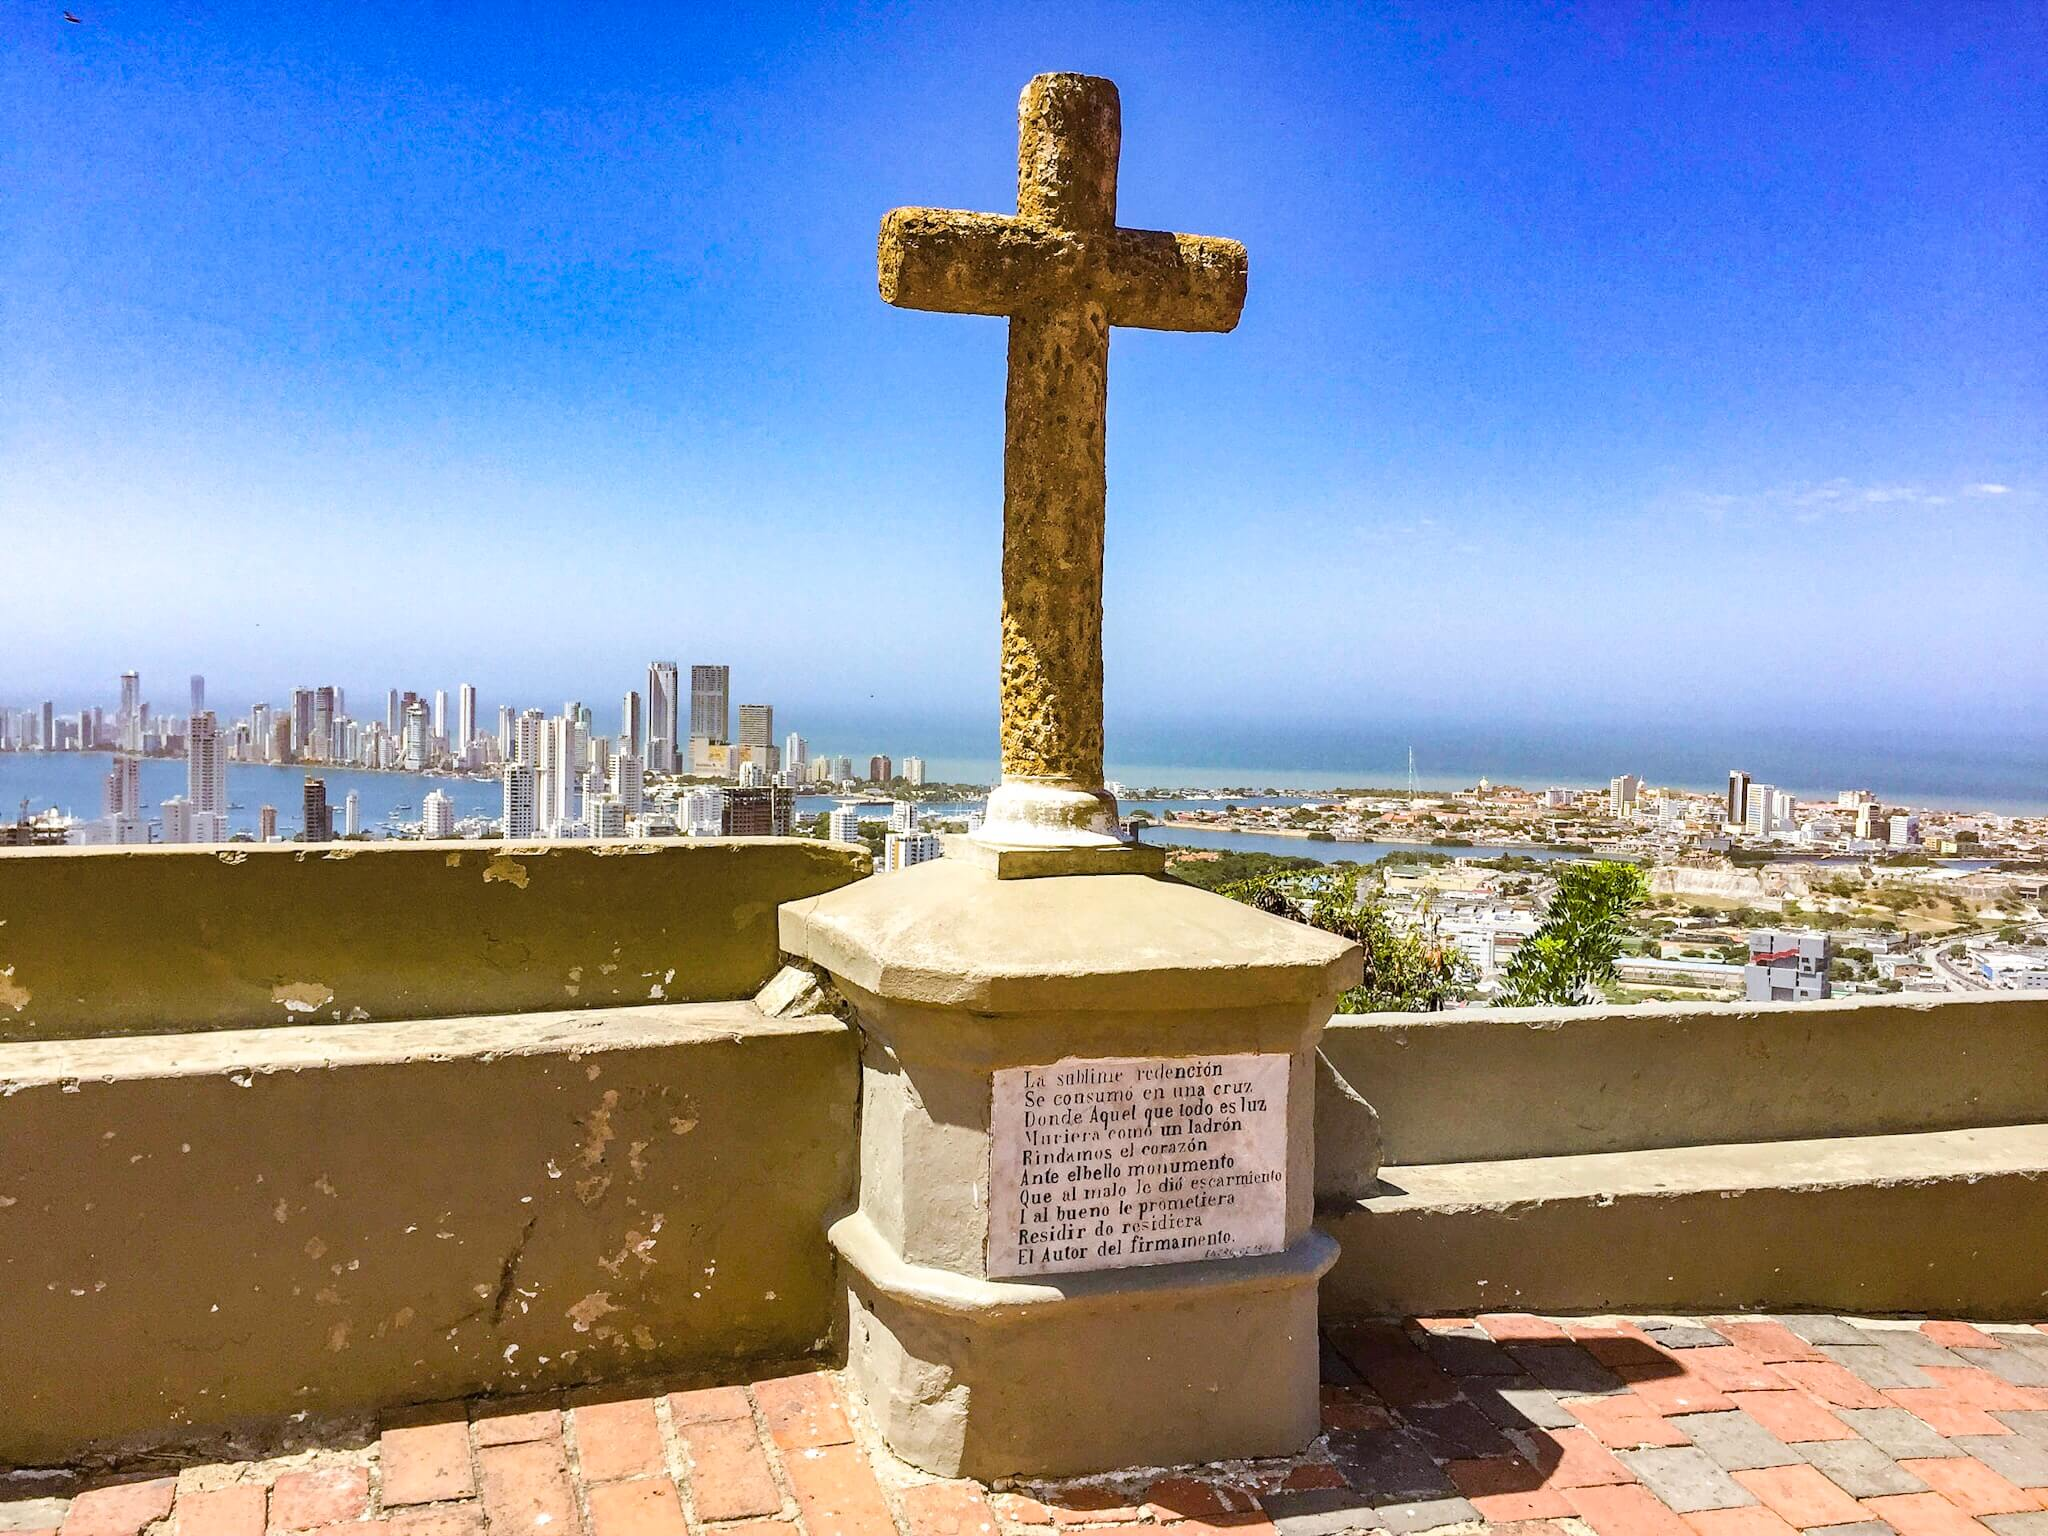 Things to do in Cartagena - Cerro de la Popa view and cross